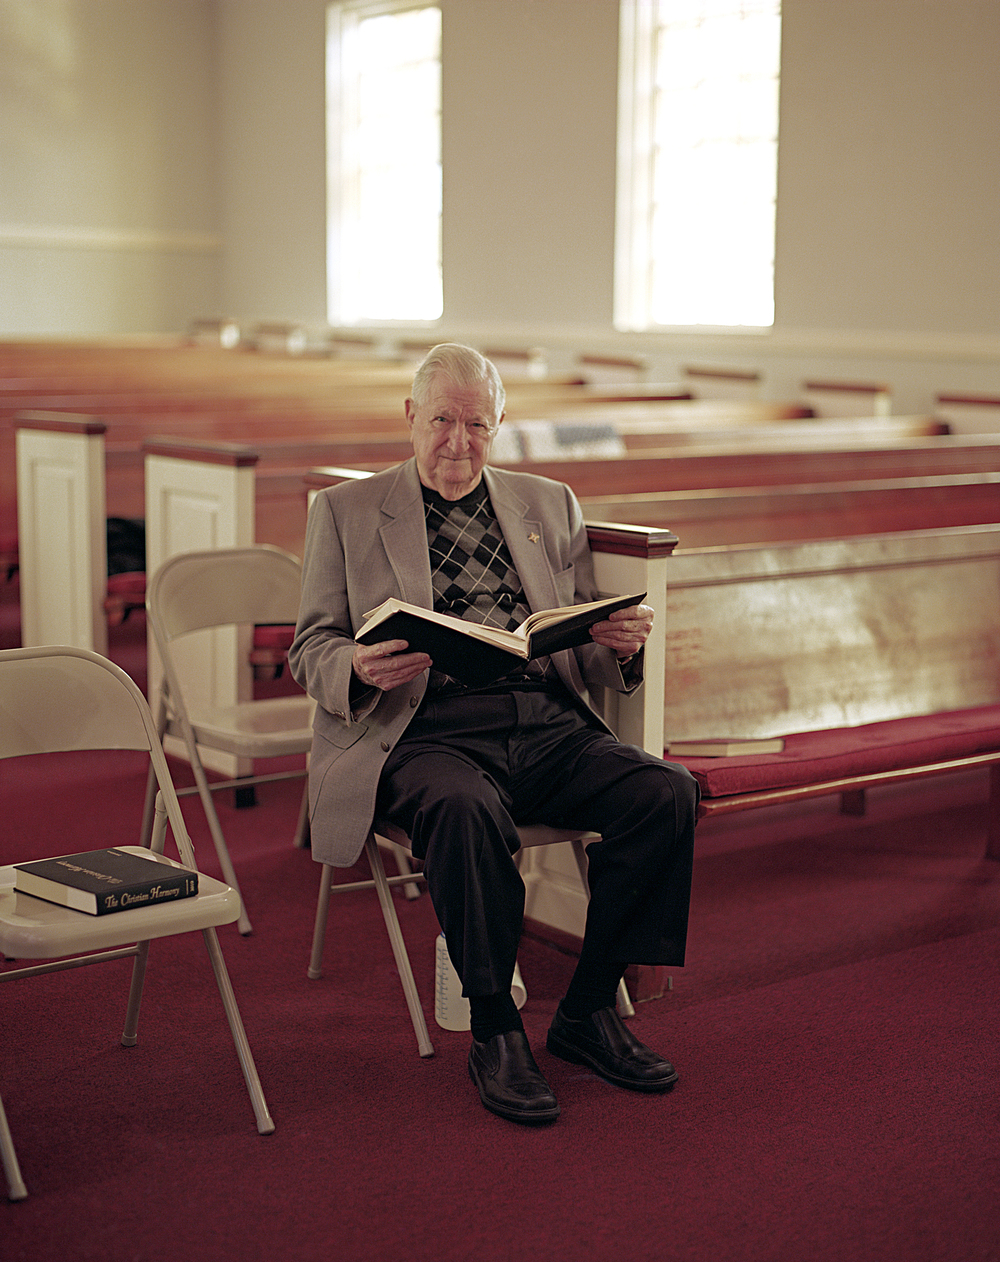 Hugh McGraw, Hardeman Primitive Baptist Church Resized.jpg